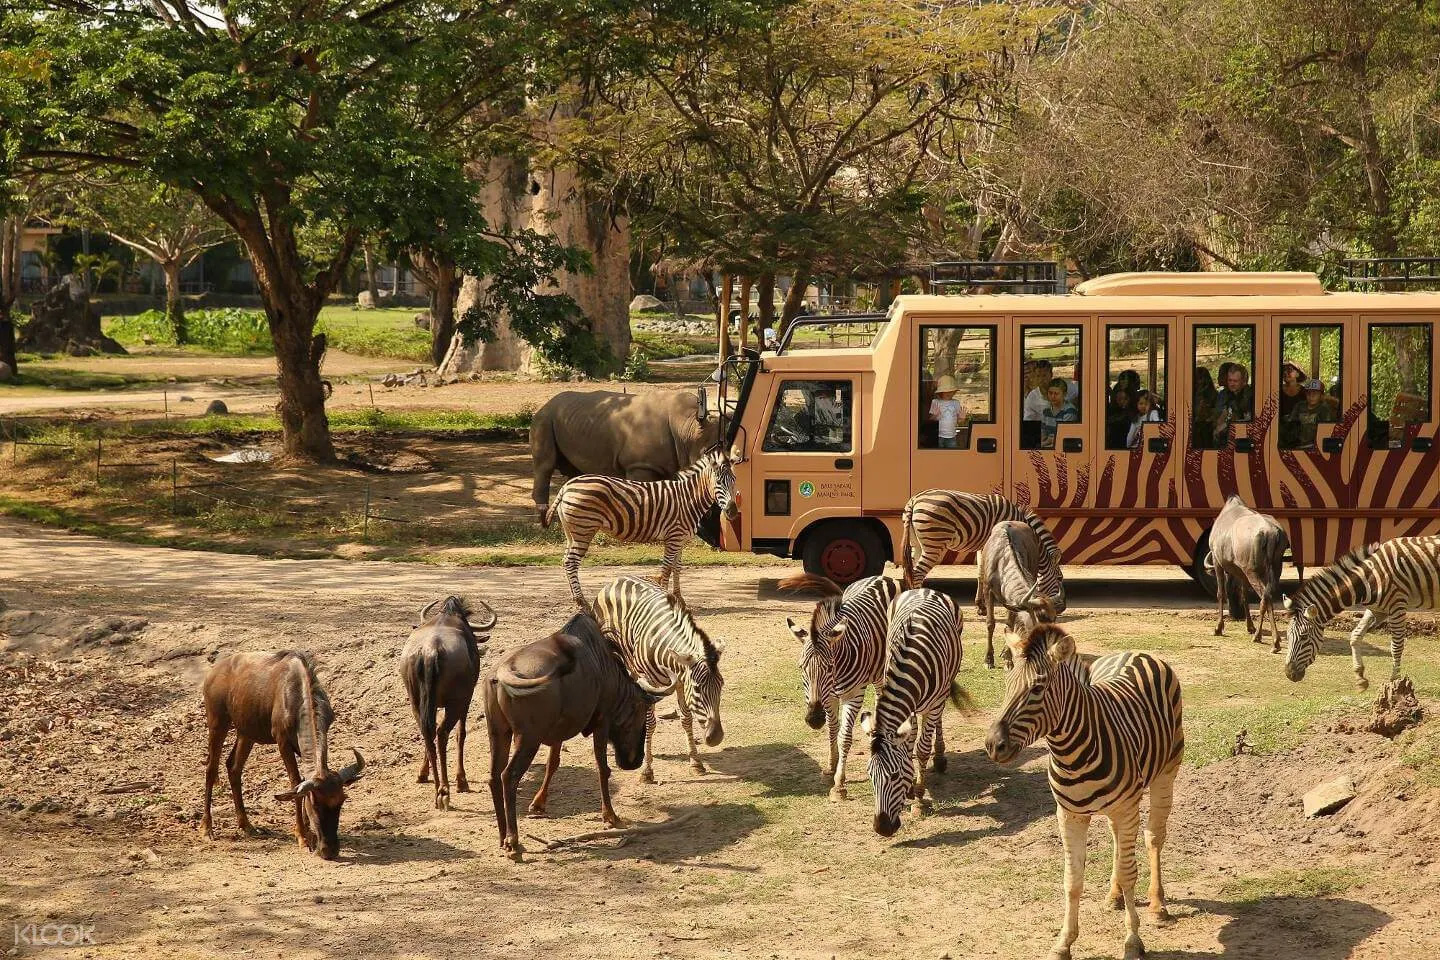 Visit the Bali Marine and Safari Park and Dine Out